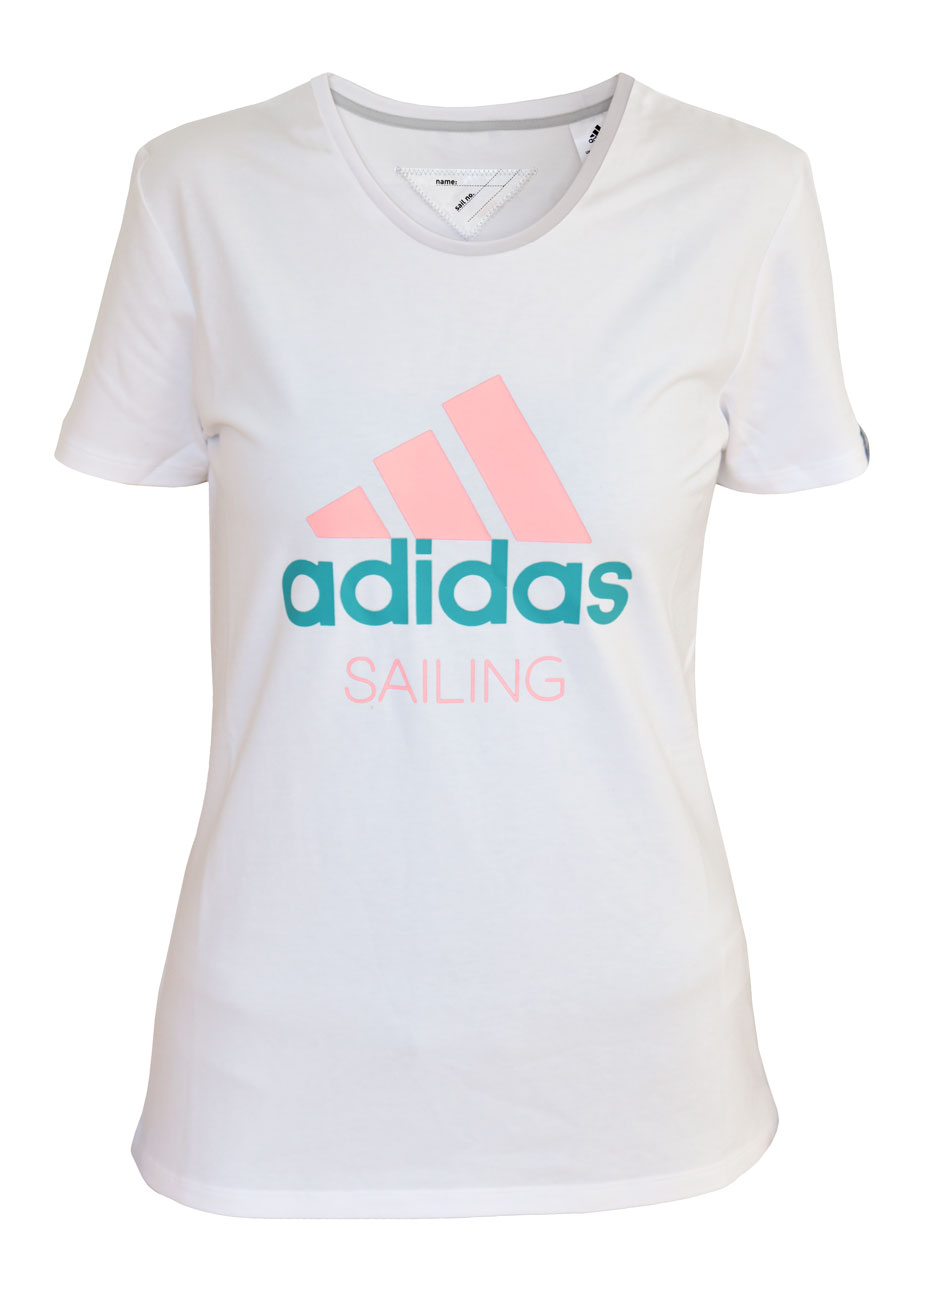 adidas sailing damen performance t shirt funktionsshirt. Black Bedroom Furniture Sets. Home Design Ideas